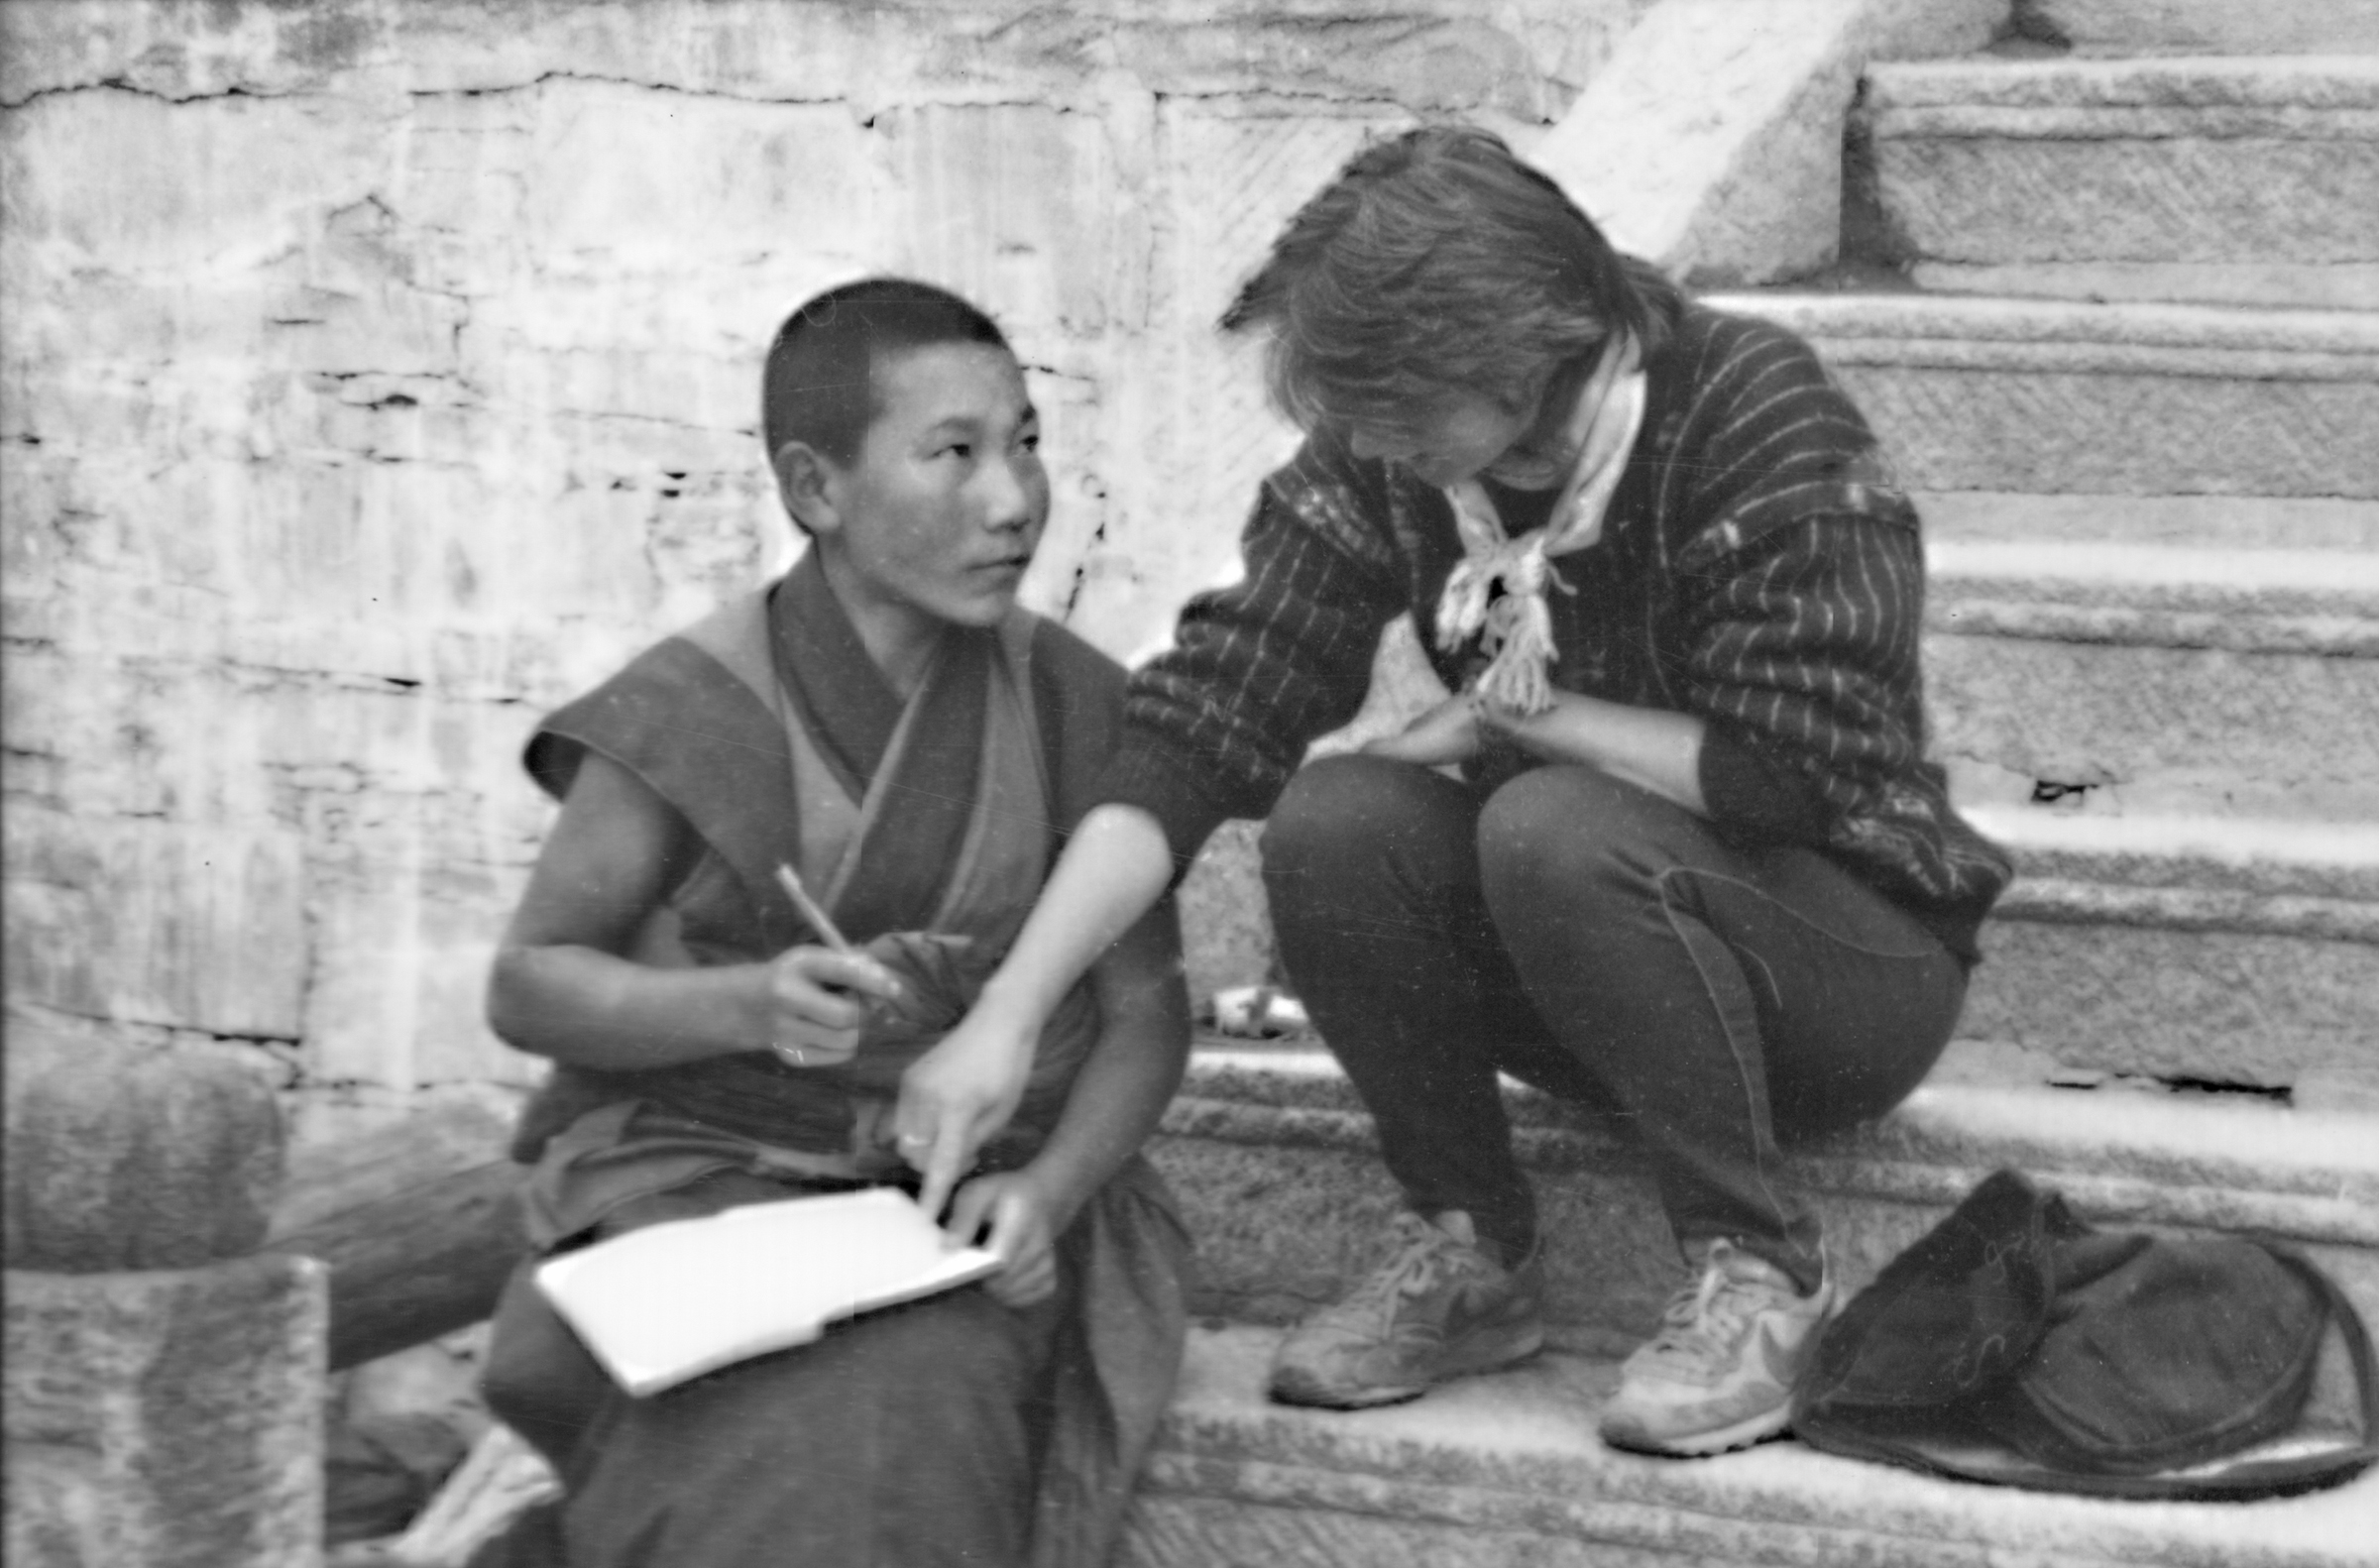 KJ in China writing notebook 1989.jpeg